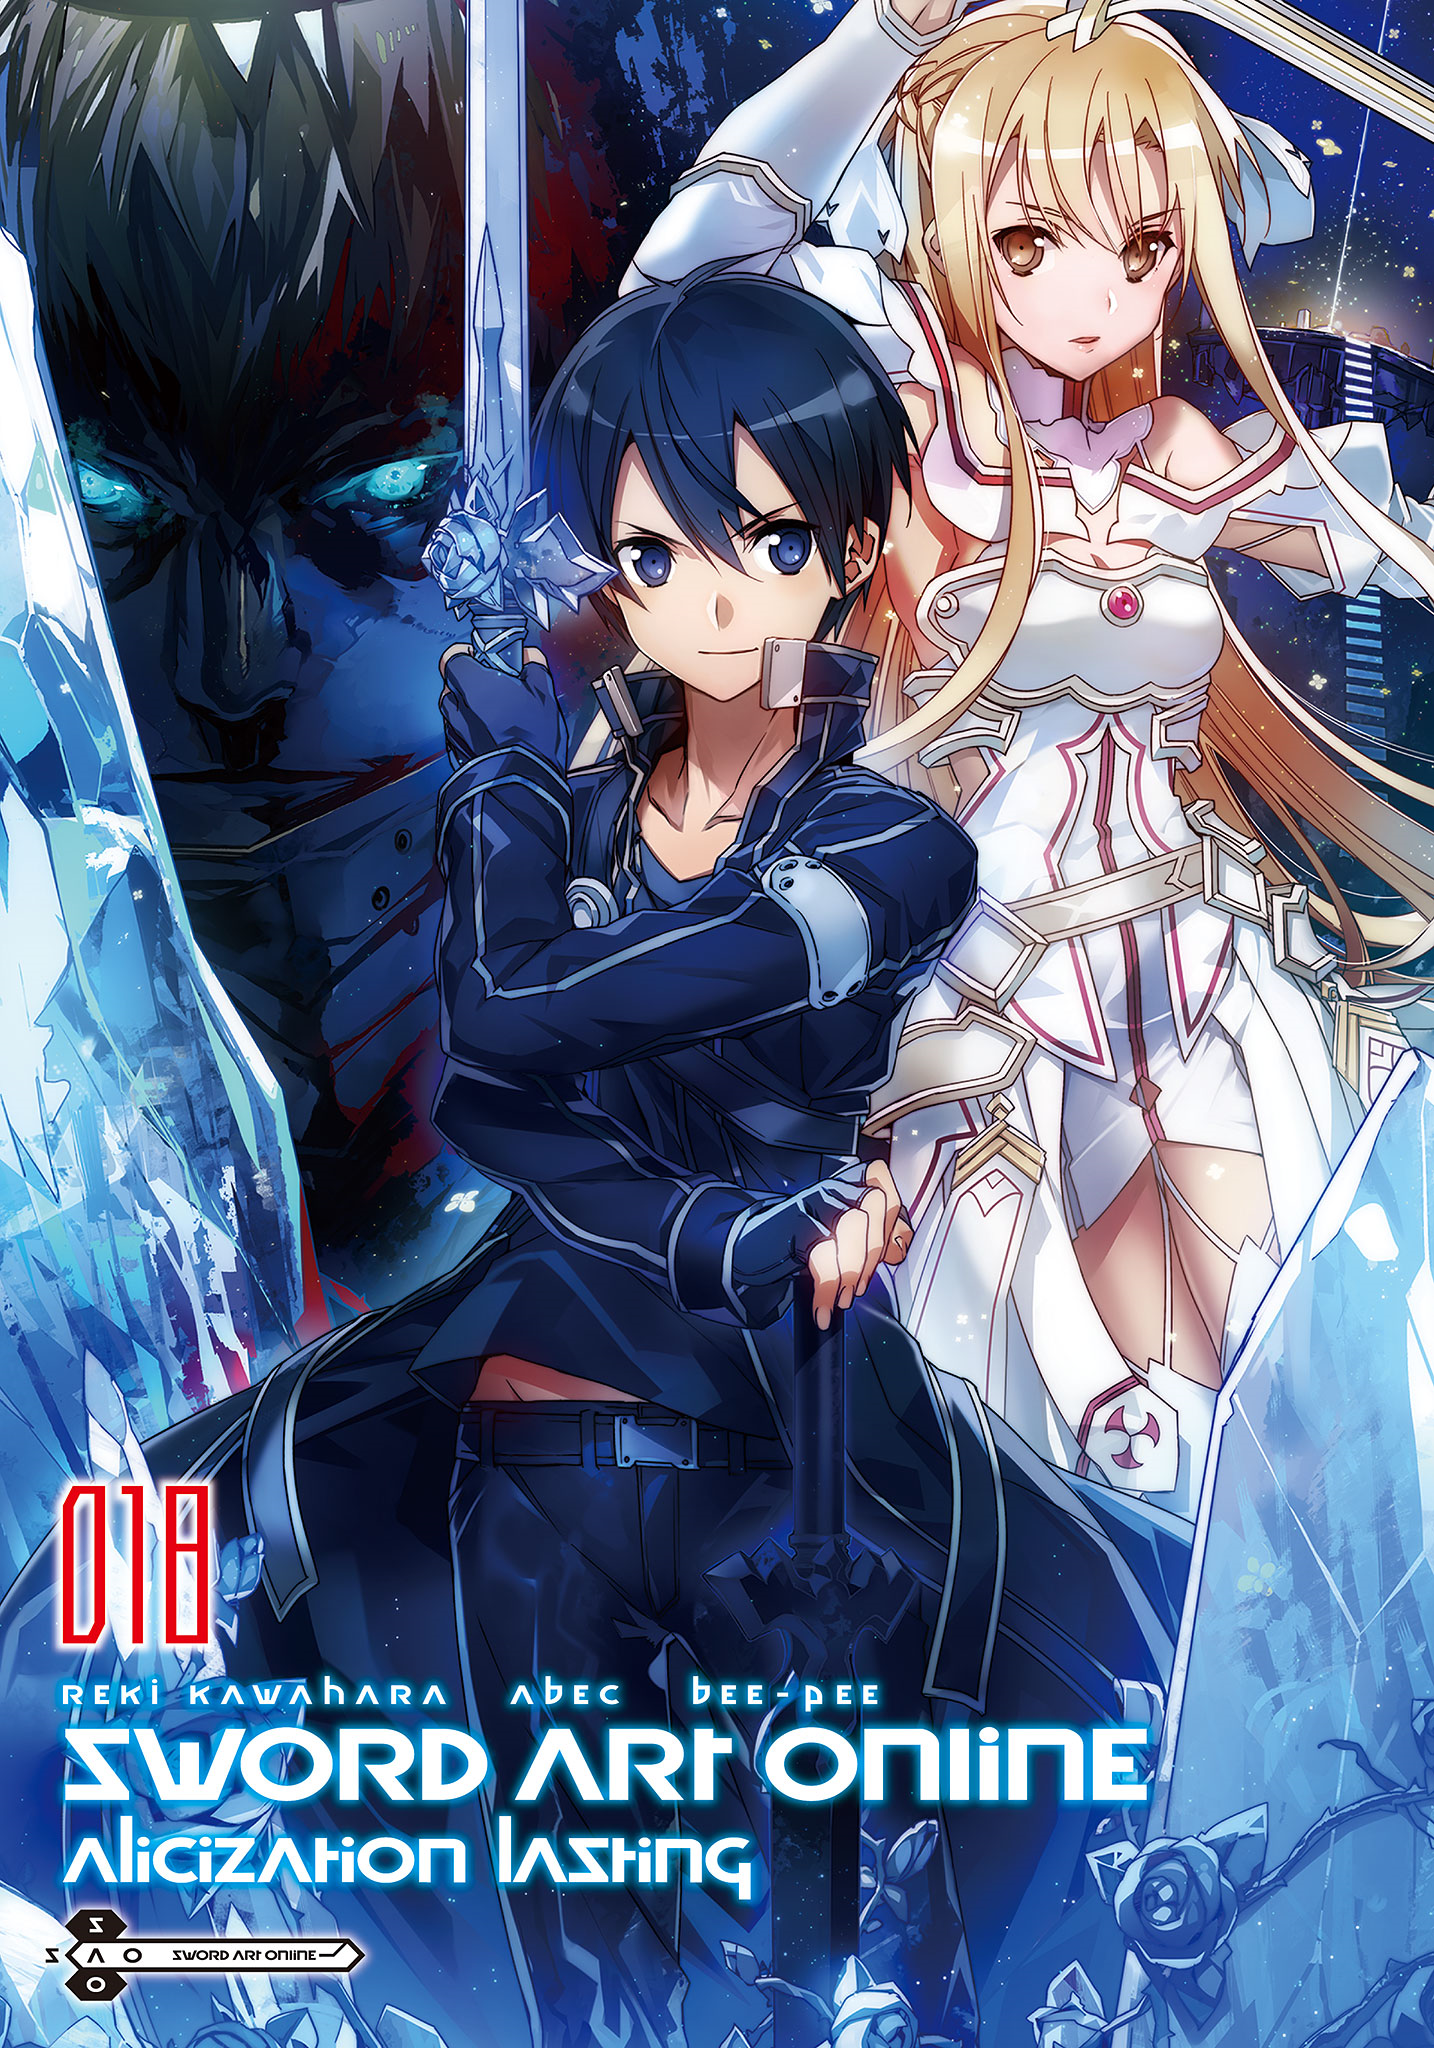 Alicization Lasting (アリシゼーション・ラスティング, Arishizēshon Rasutingu) Is The 18 Book  In The Sword Art.. Gallery